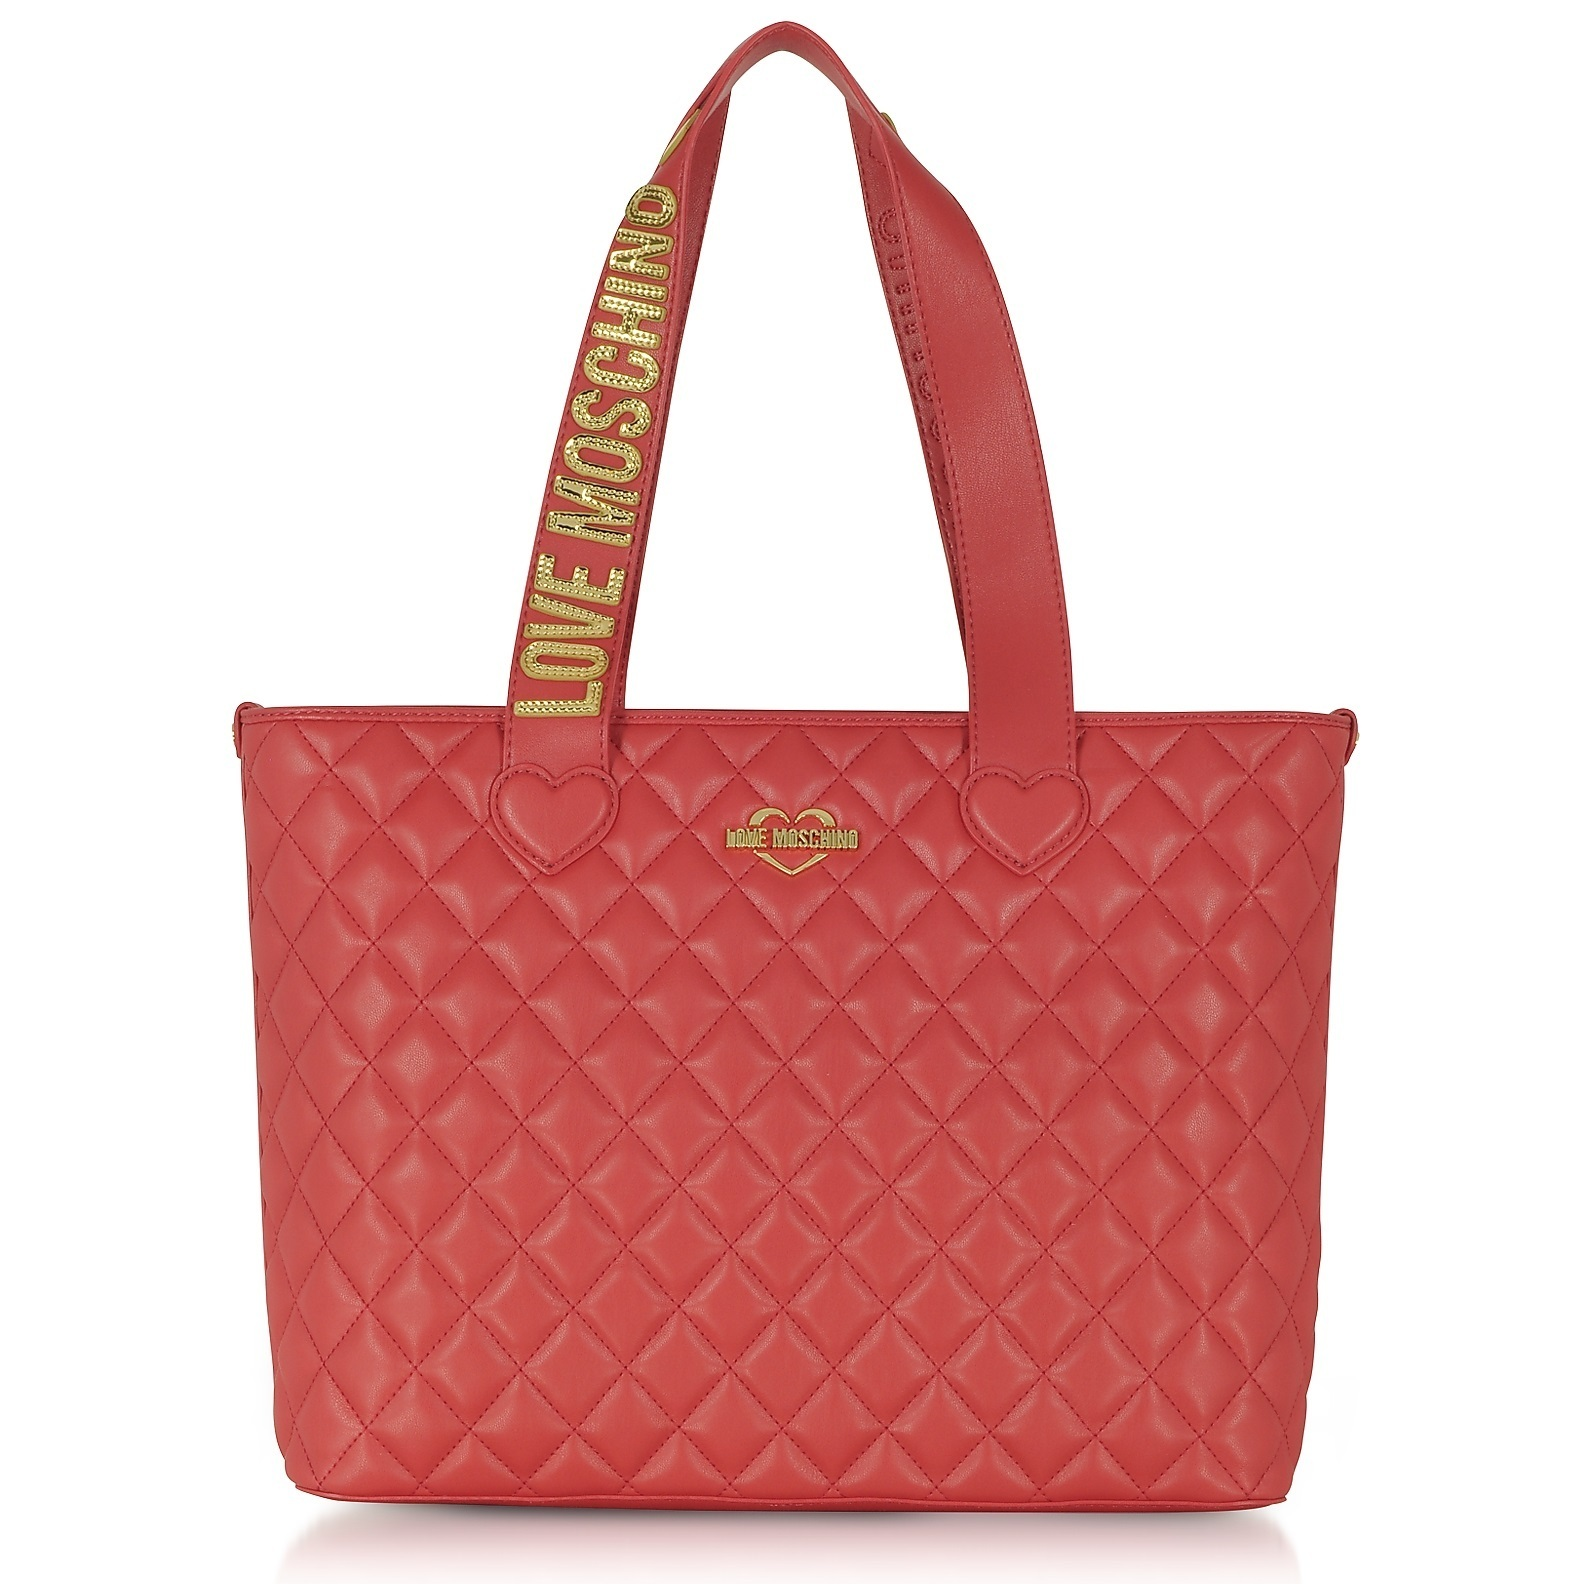 ★Love Moschino★ Fashion Red Quilted Ecoトートバッグ 関税込